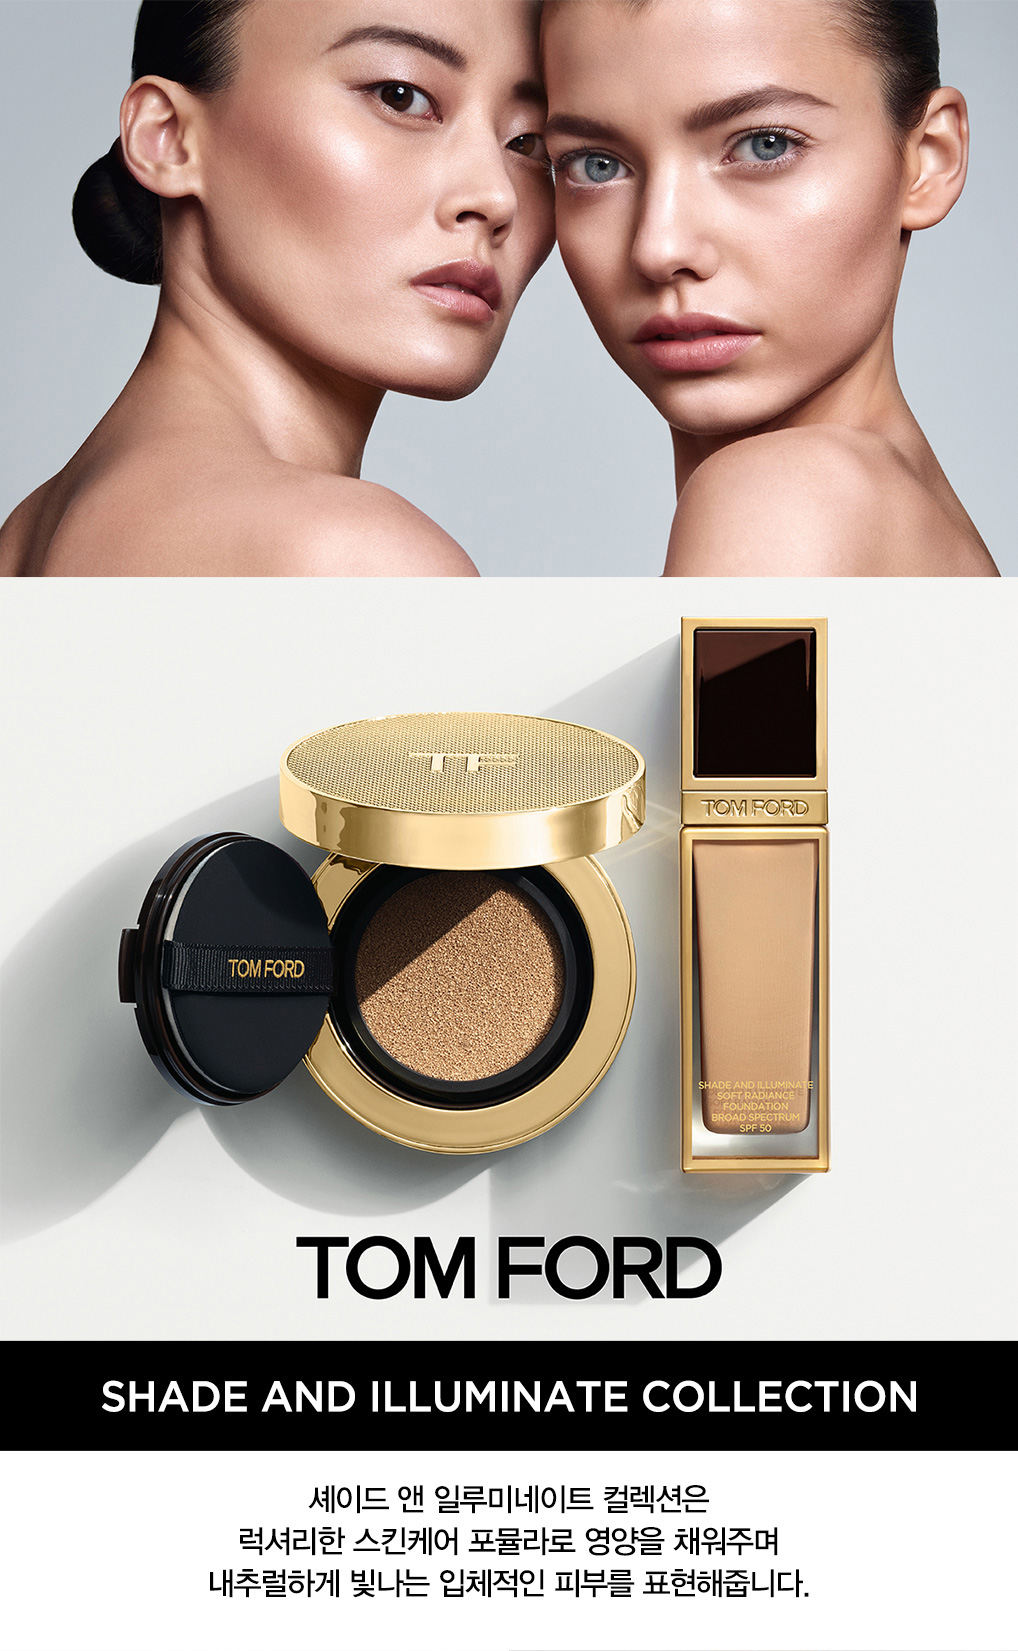 TOM FORD BEAUTY SHADE AND ILLUMINATE COLLECTION